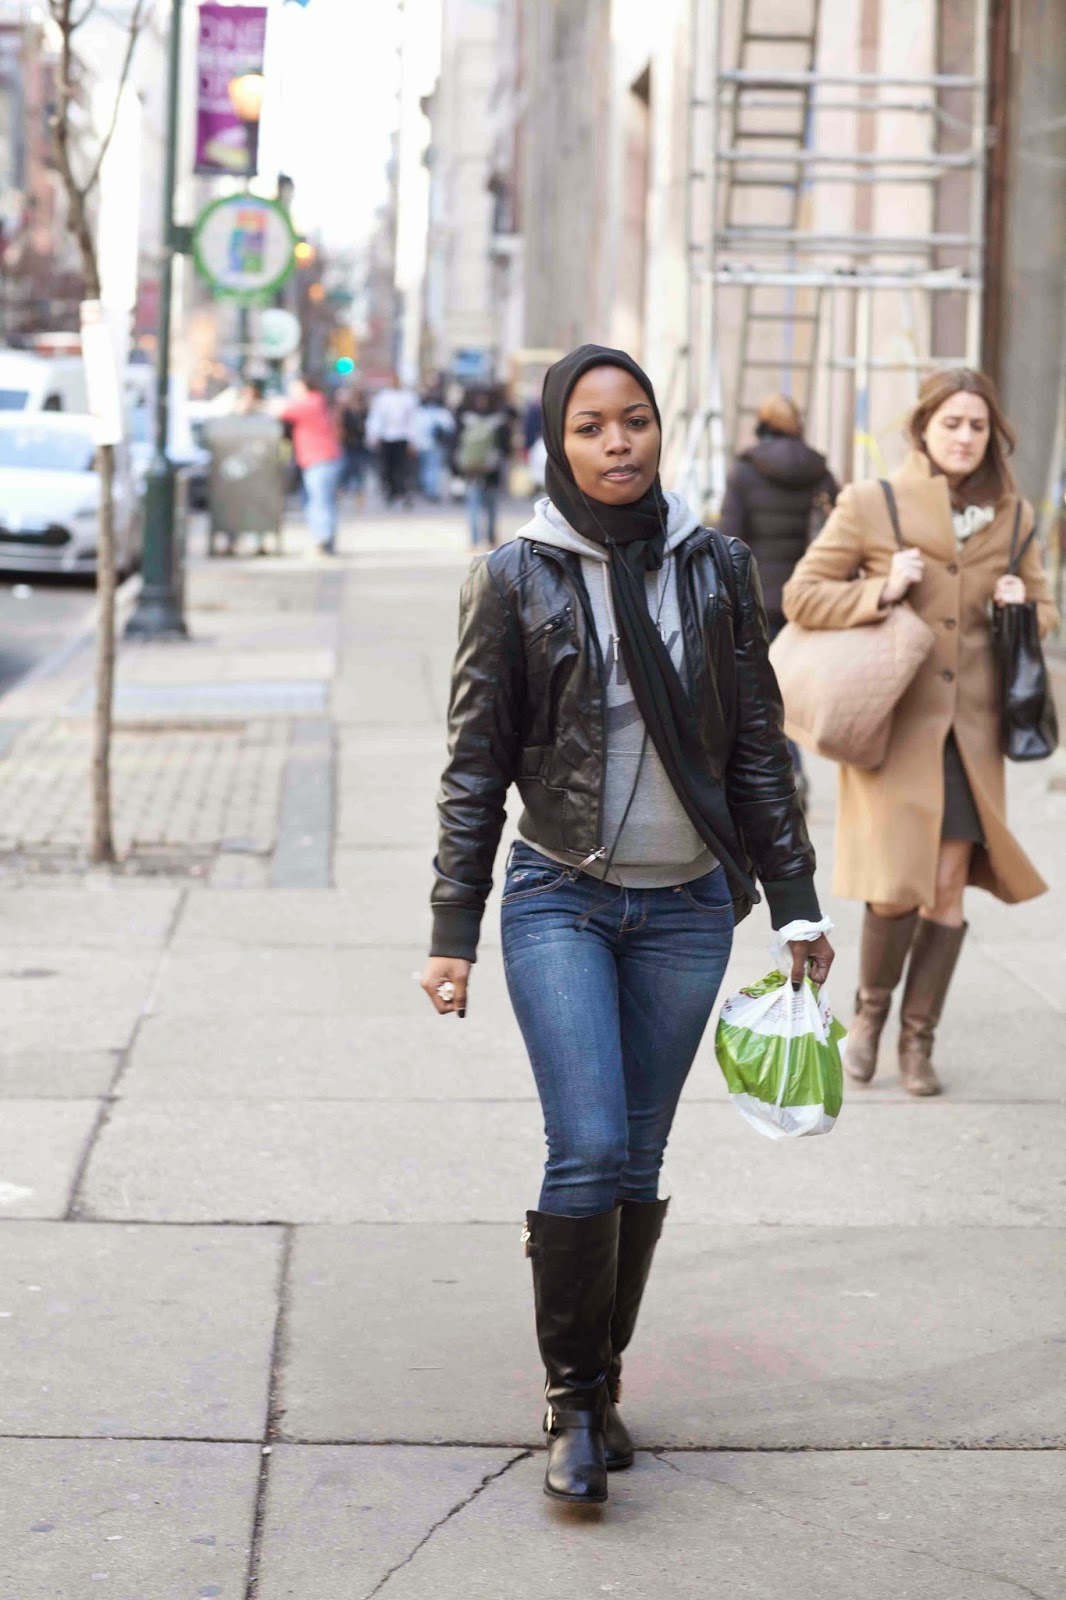 Leather jacket hijab - Posted By Bigrube Street Style Gazing At 8 44 00 Am